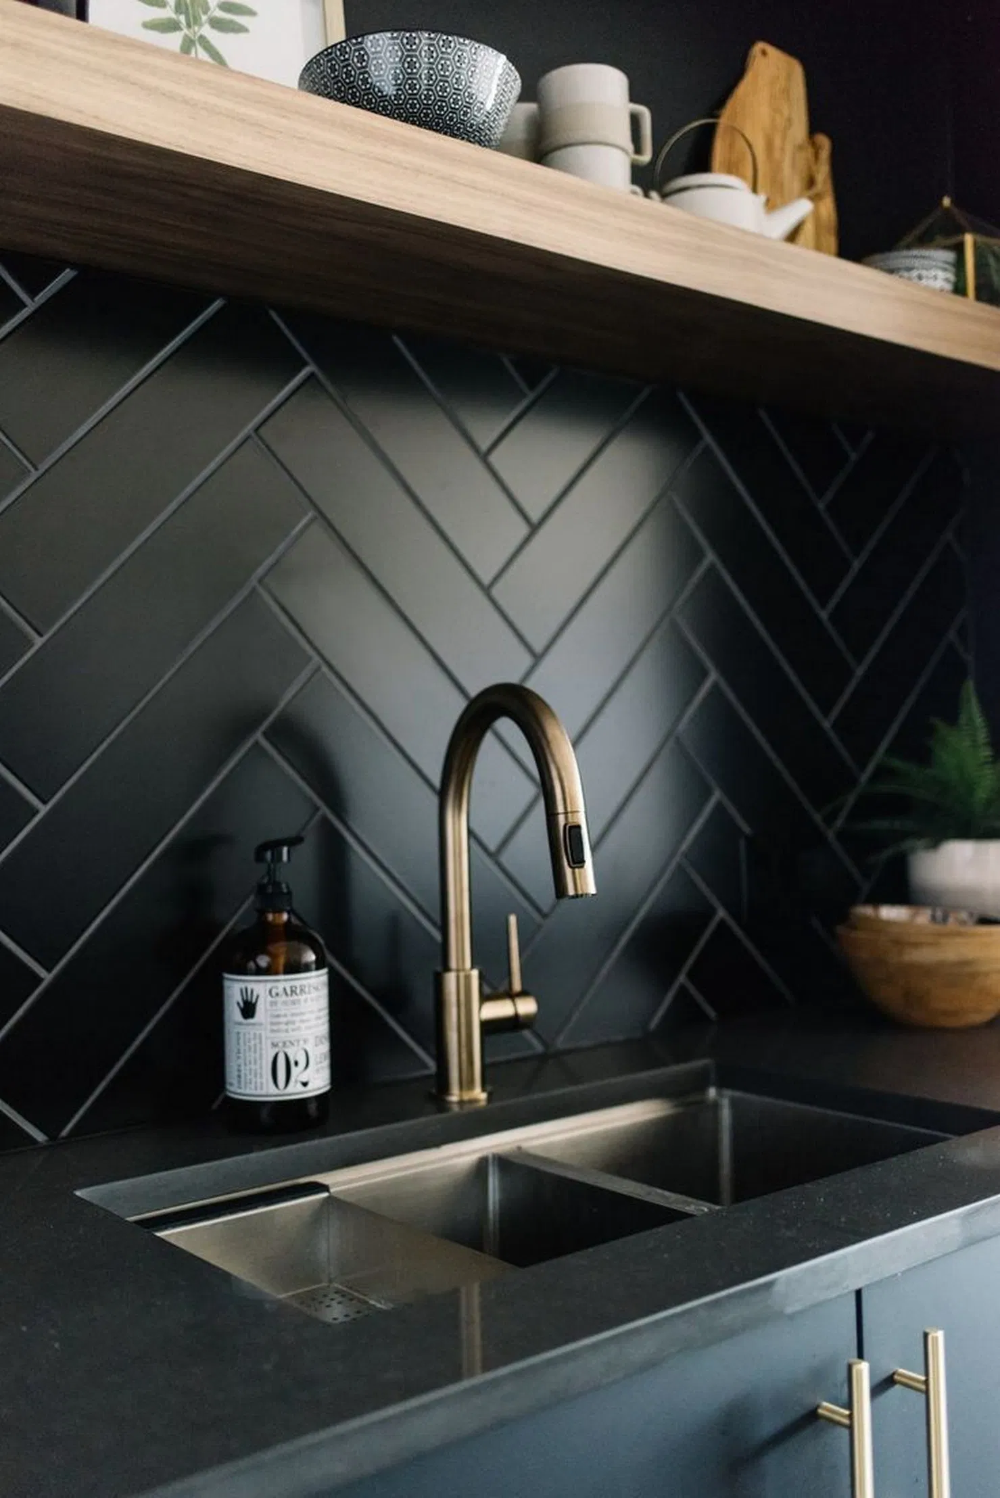 45 Gorgeous Black Kitchen Sink Ideas Kitchen Cabinets And Backsplash Herringbone Backsplash Kitchen Concepts